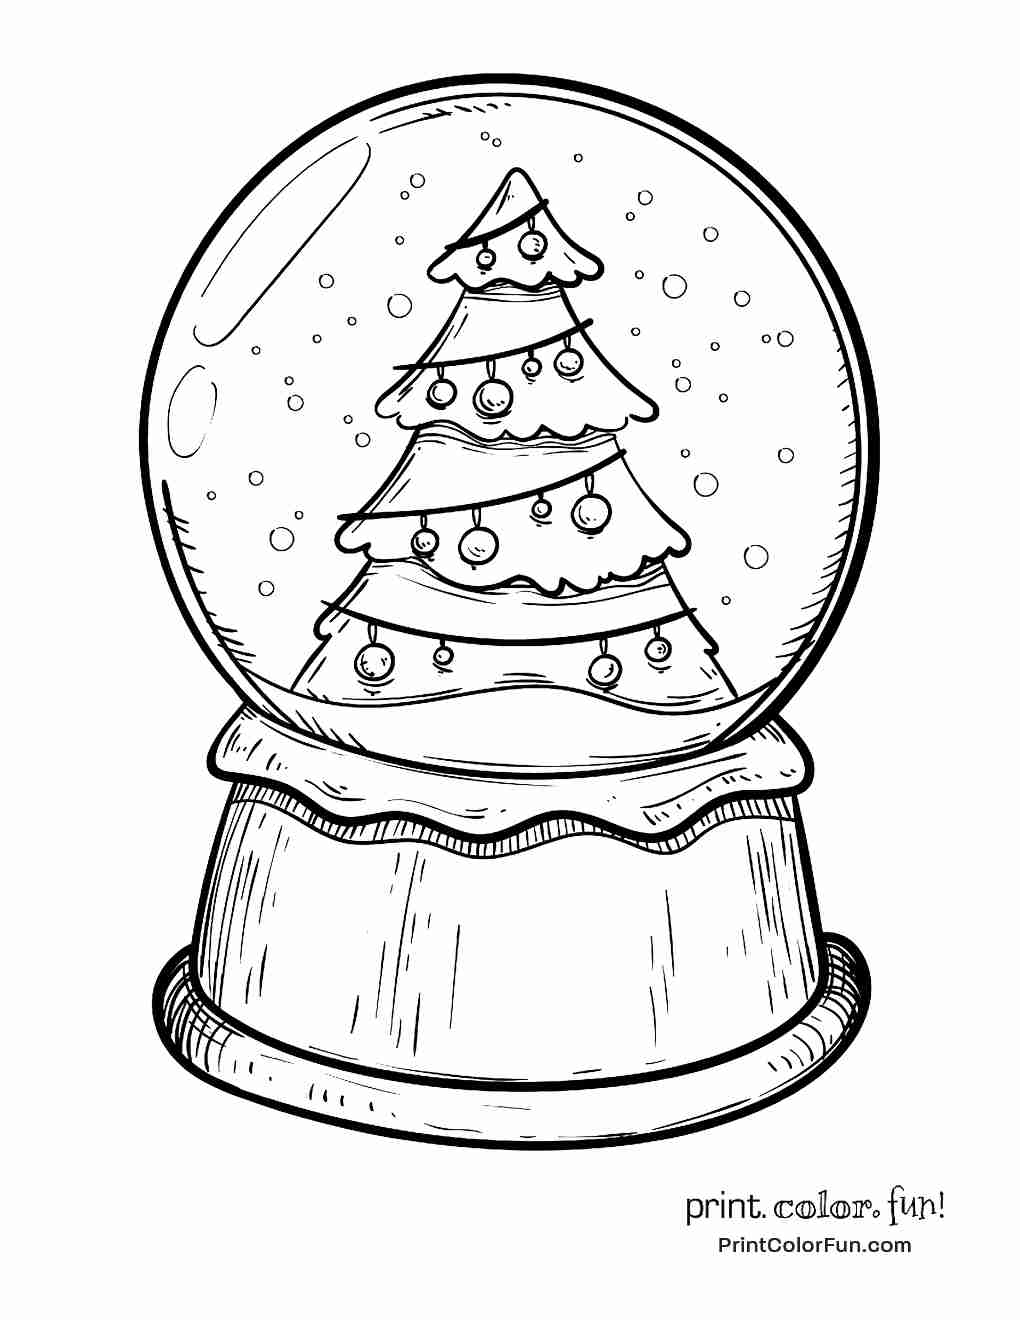 1020x1320 Excellent Printable Snow Globe Coloring Page With Brilliant